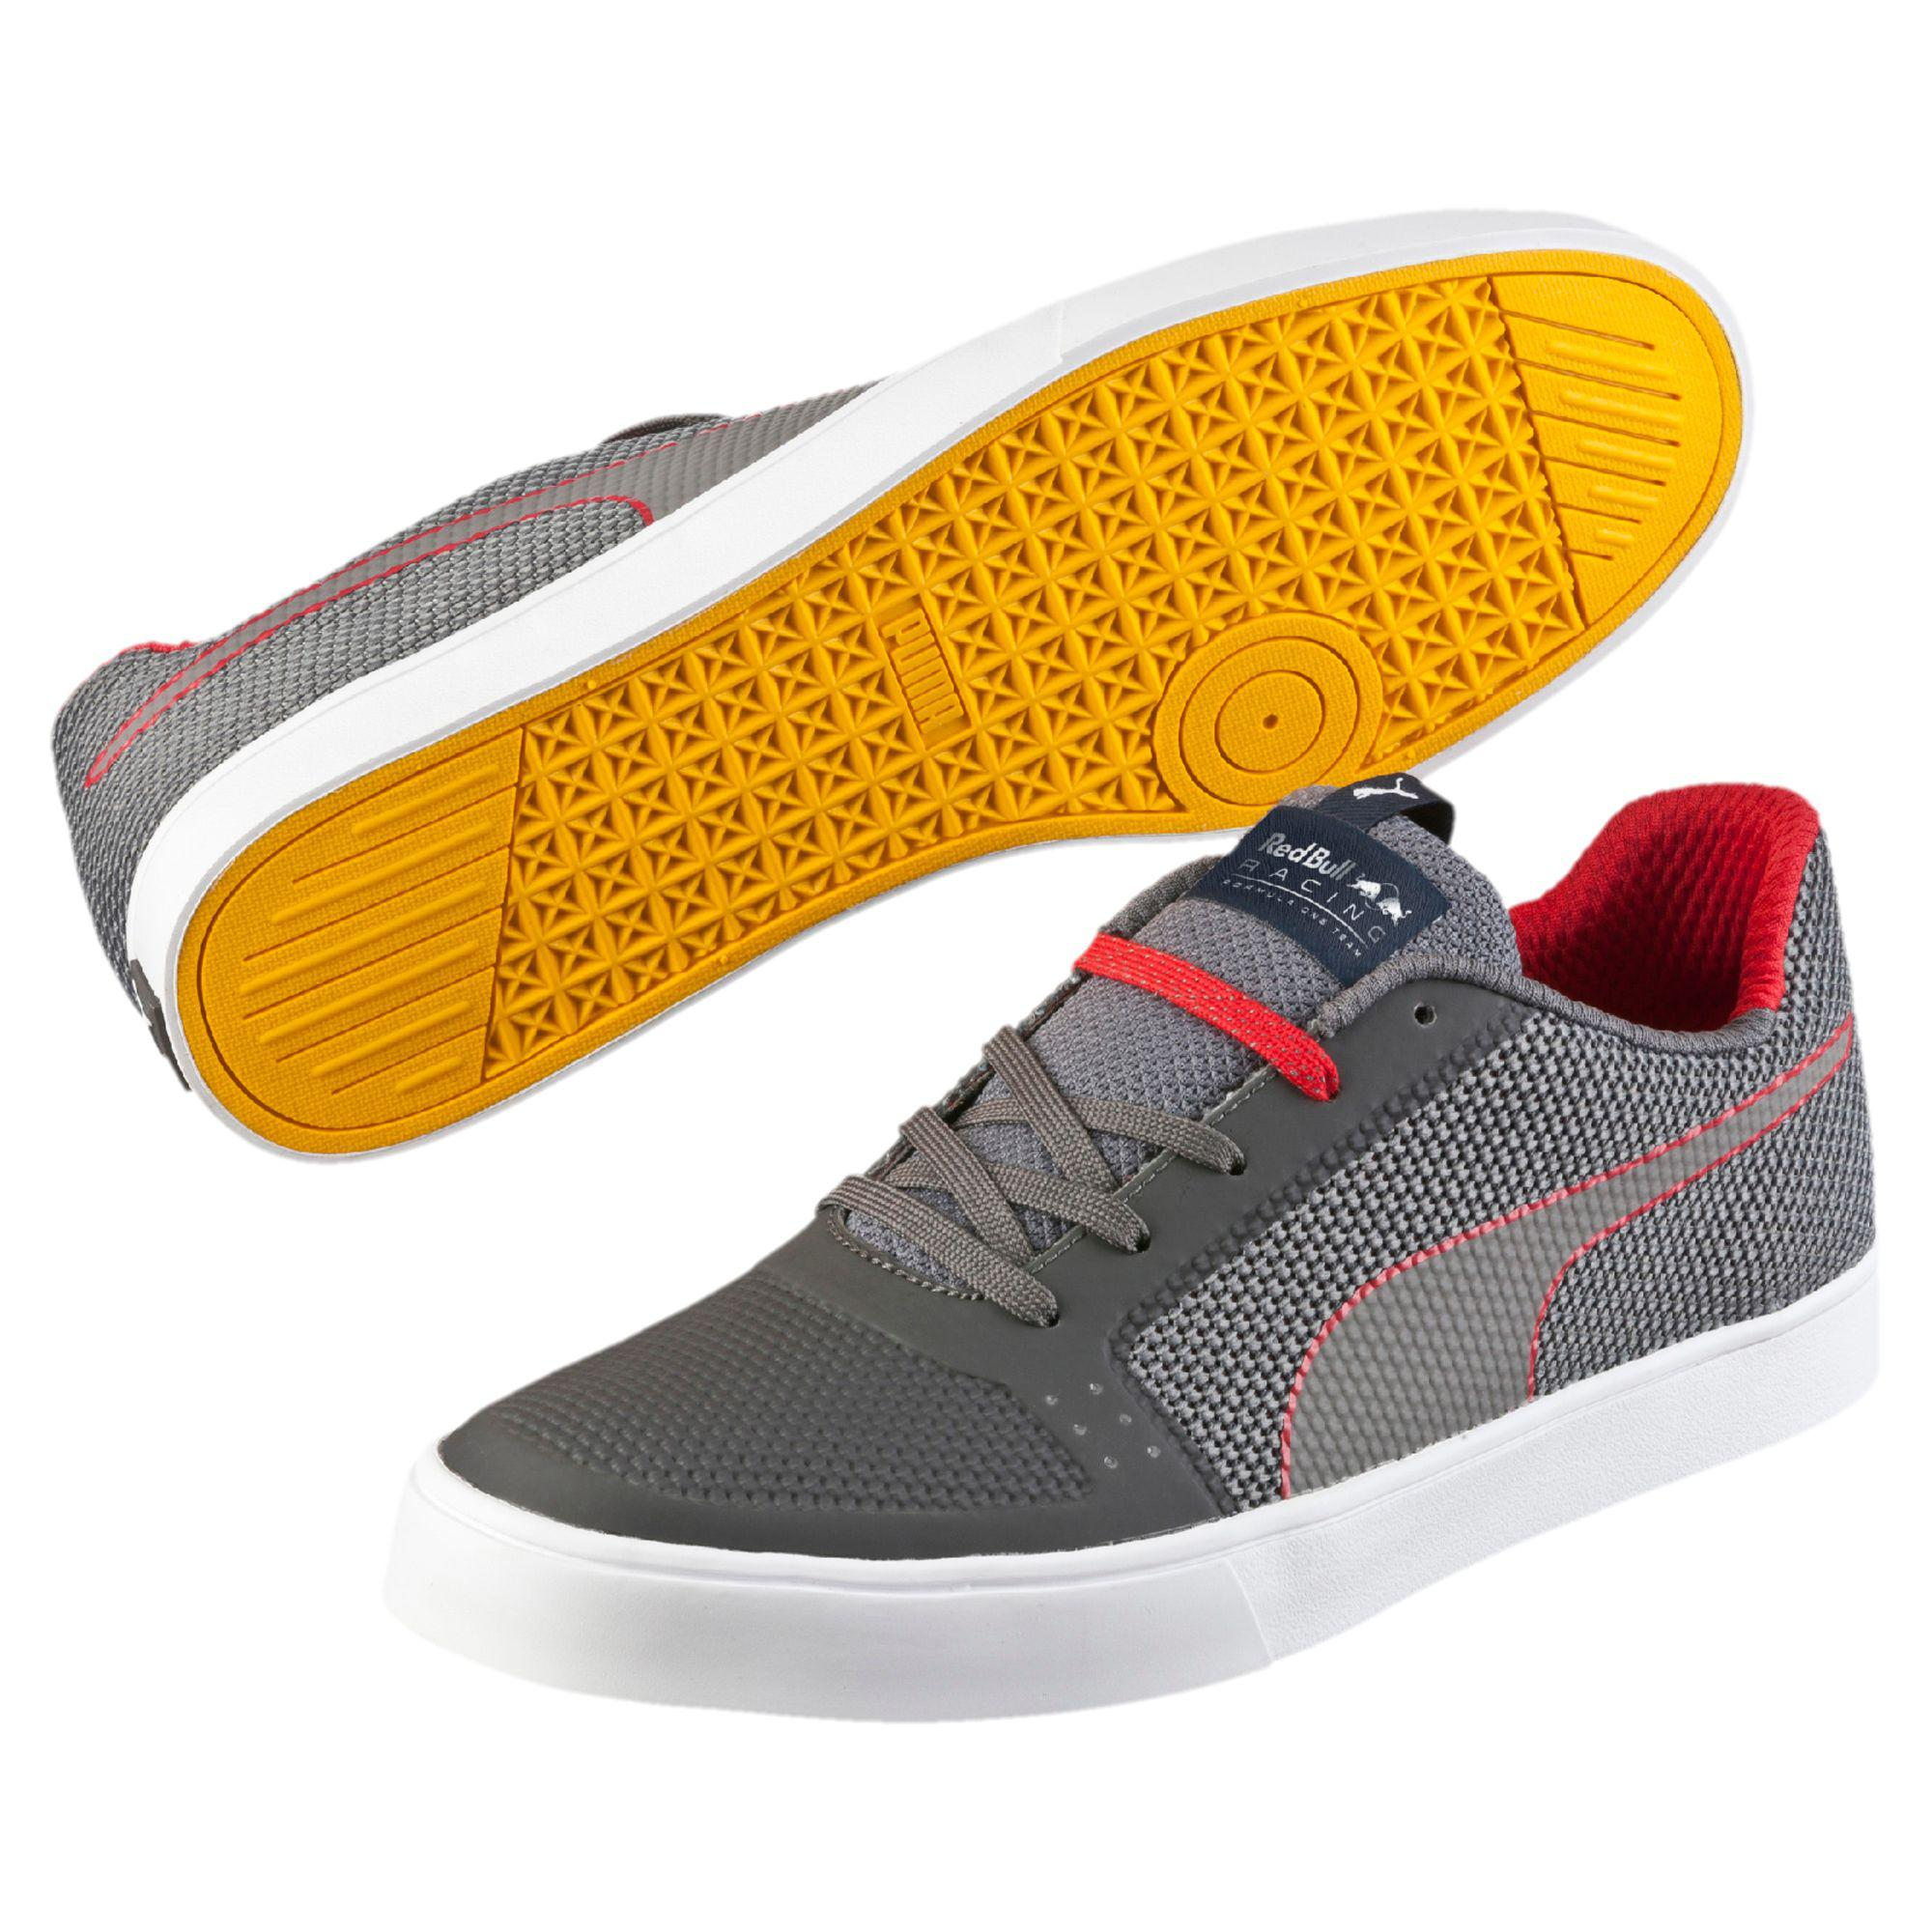 lyst puma red bull racing wings vulc men 39 s shoes in brown for men. Black Bedroom Furniture Sets. Home Design Ideas